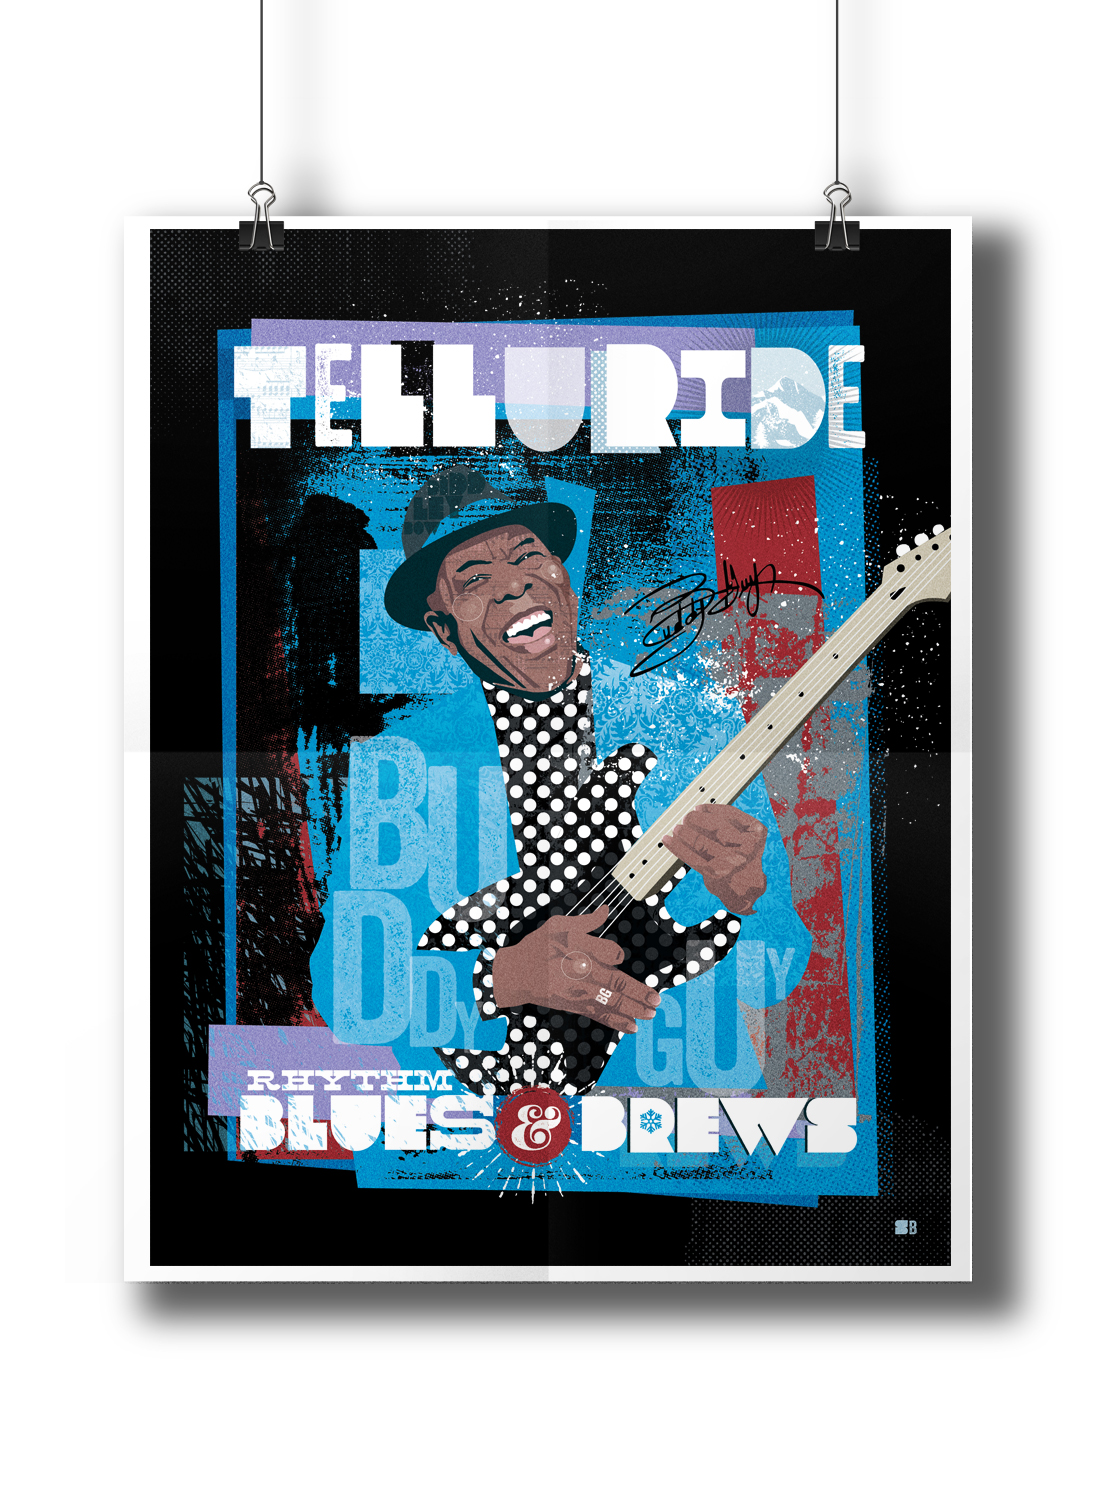 Don't forget Buddy Guy! Get these only at Wizard Entertainment in Telluride!